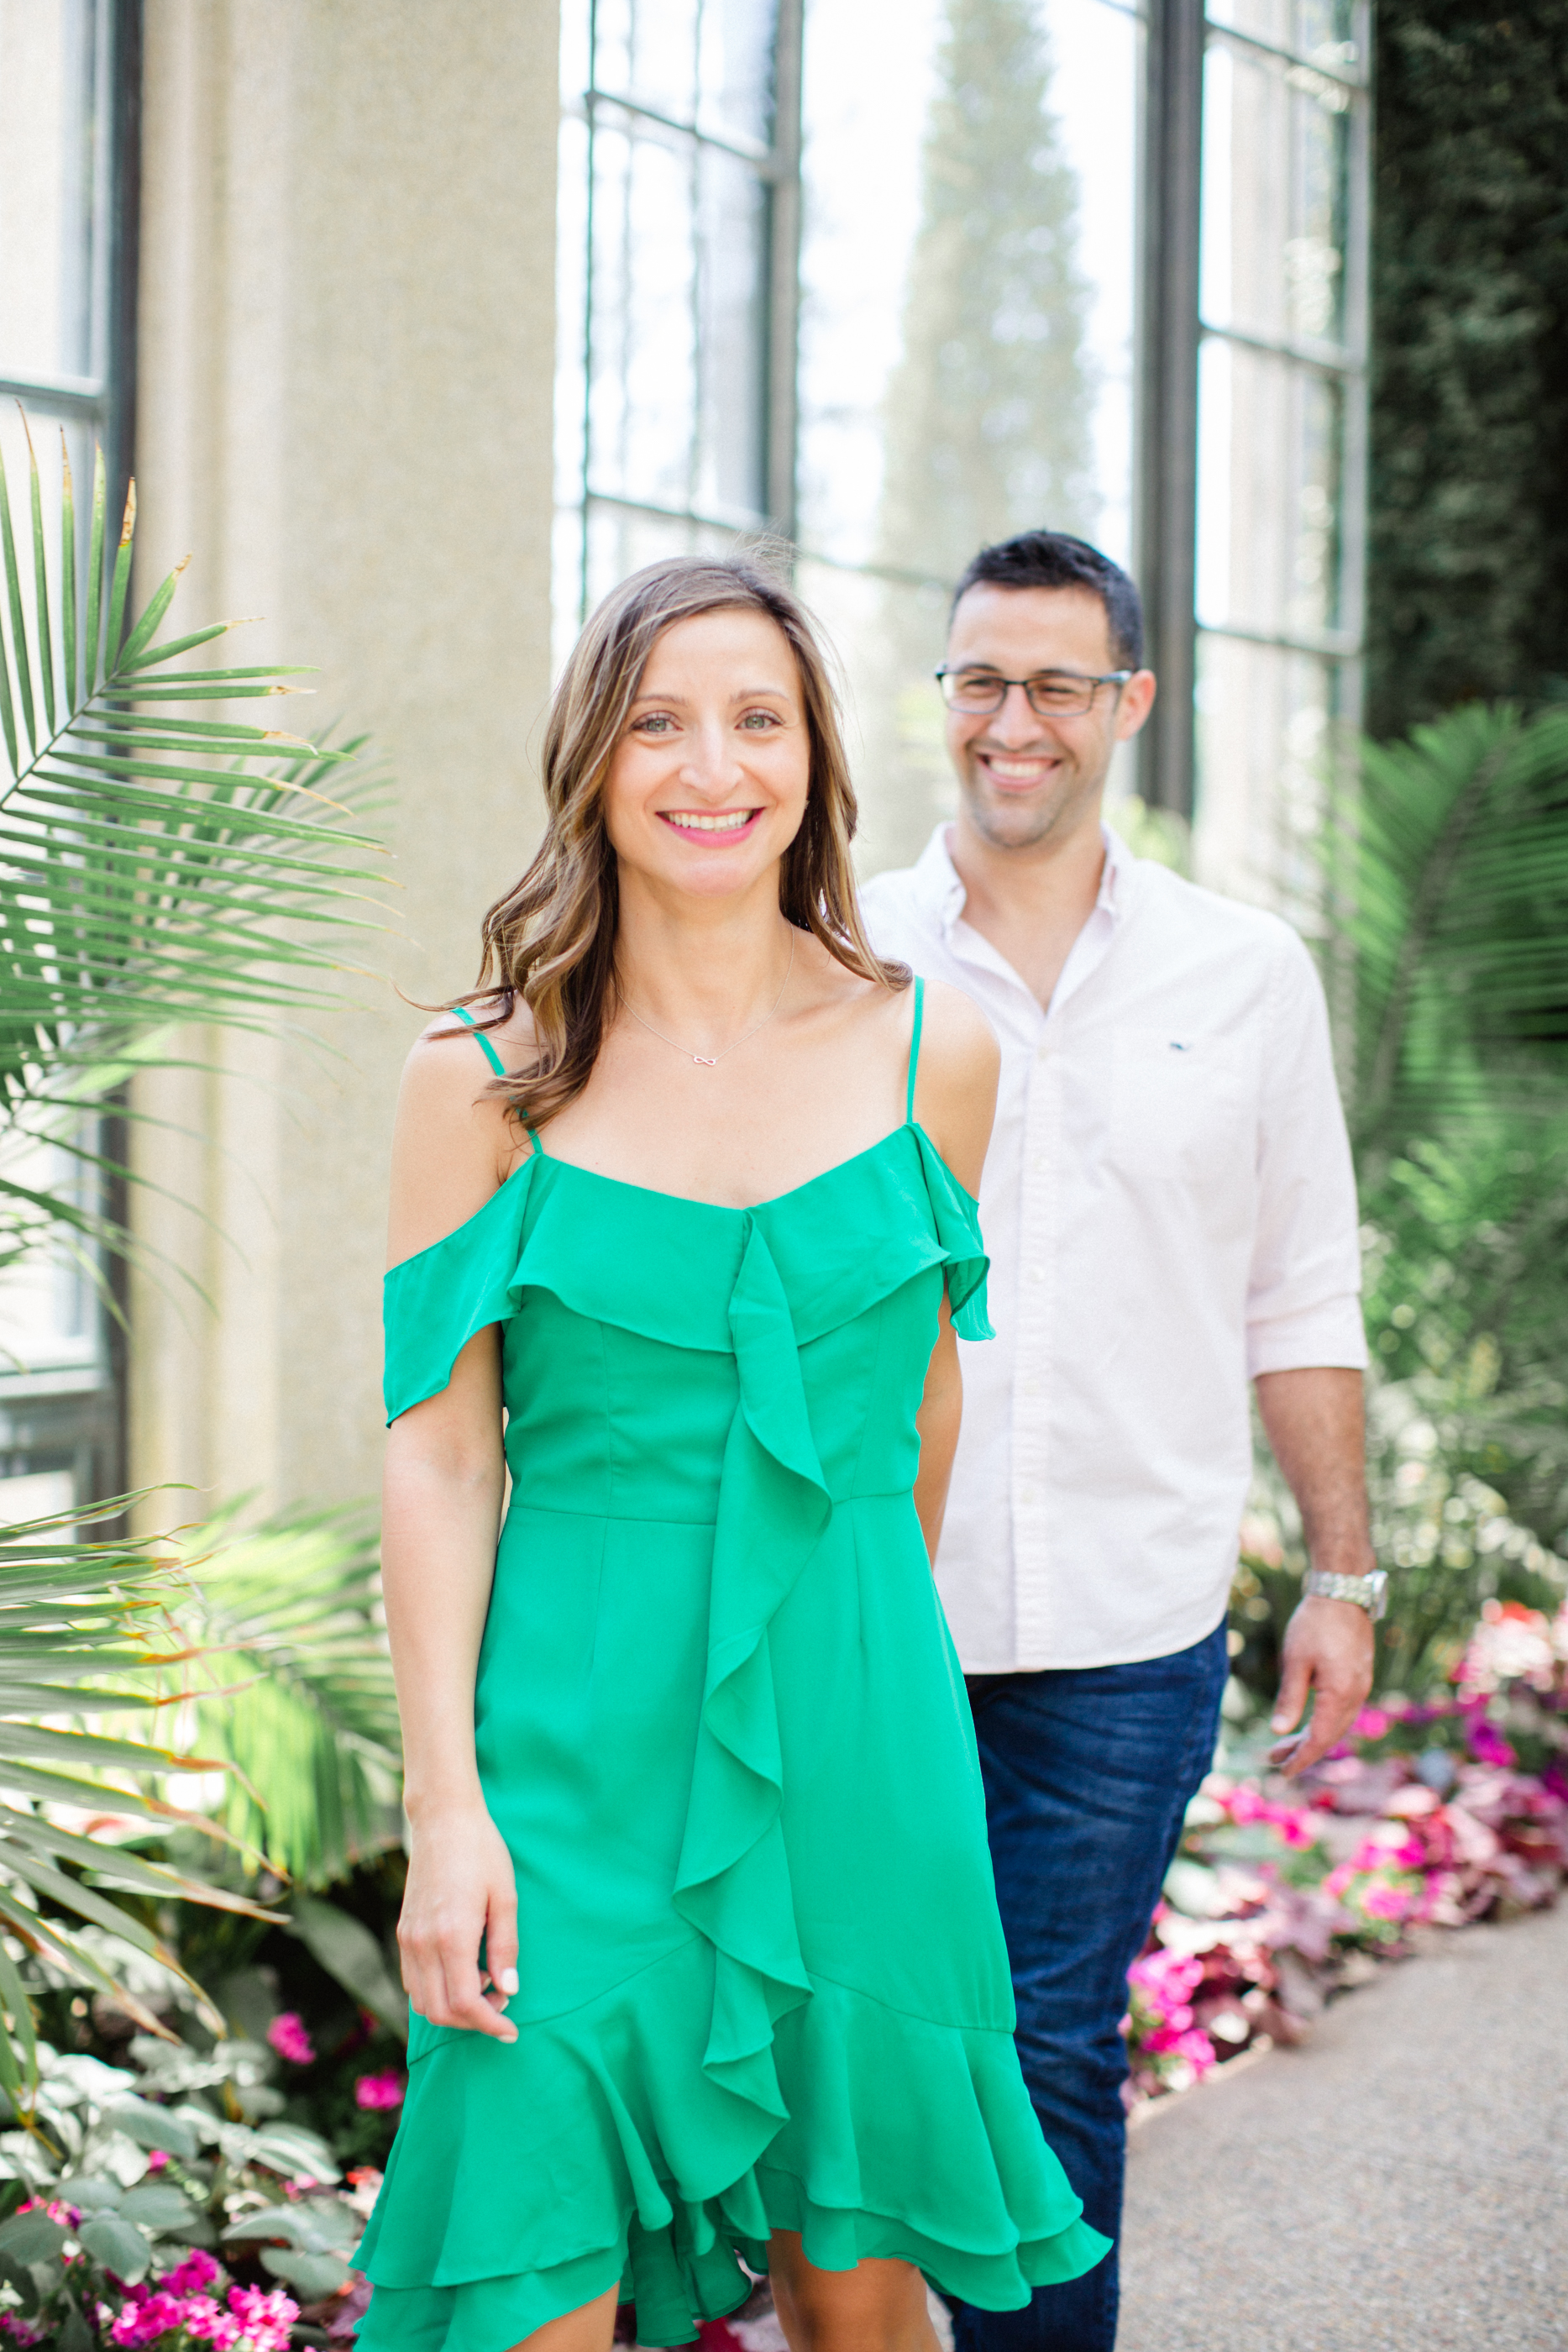 Longwood Gardens Engagement Session Photos_JDP-65.jpg